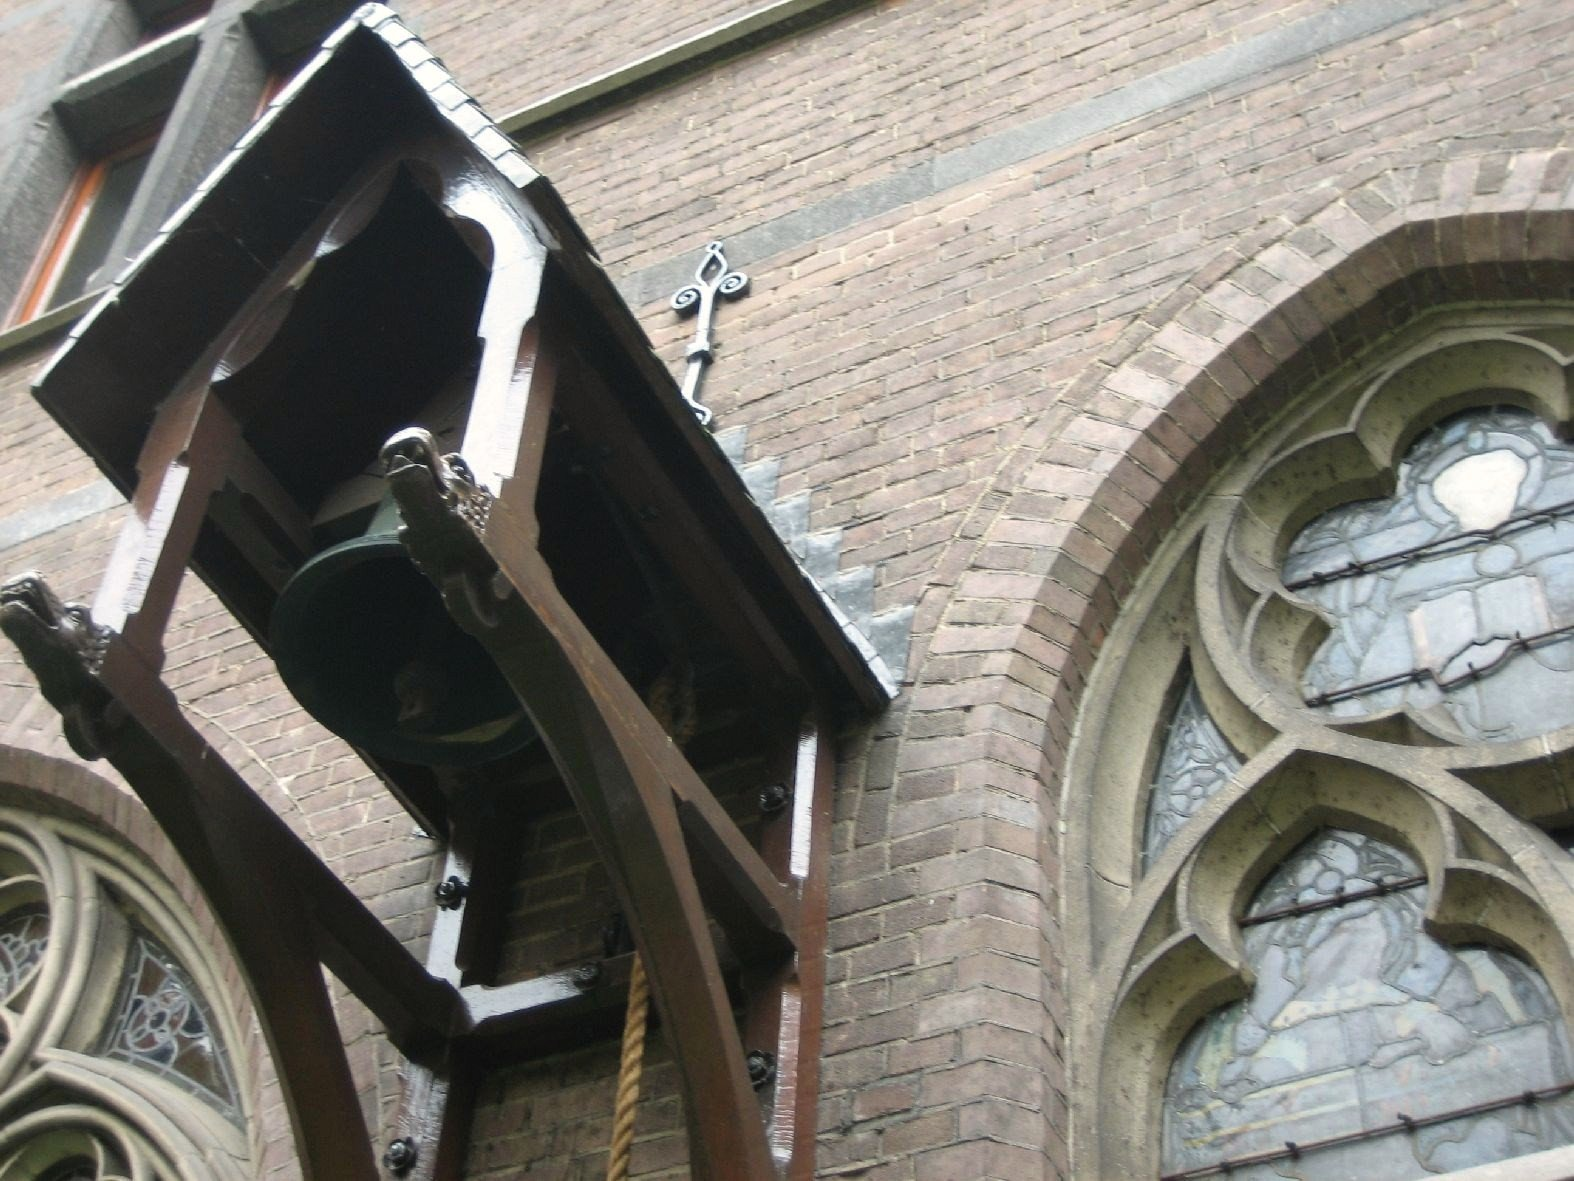 adres klooster zwolle